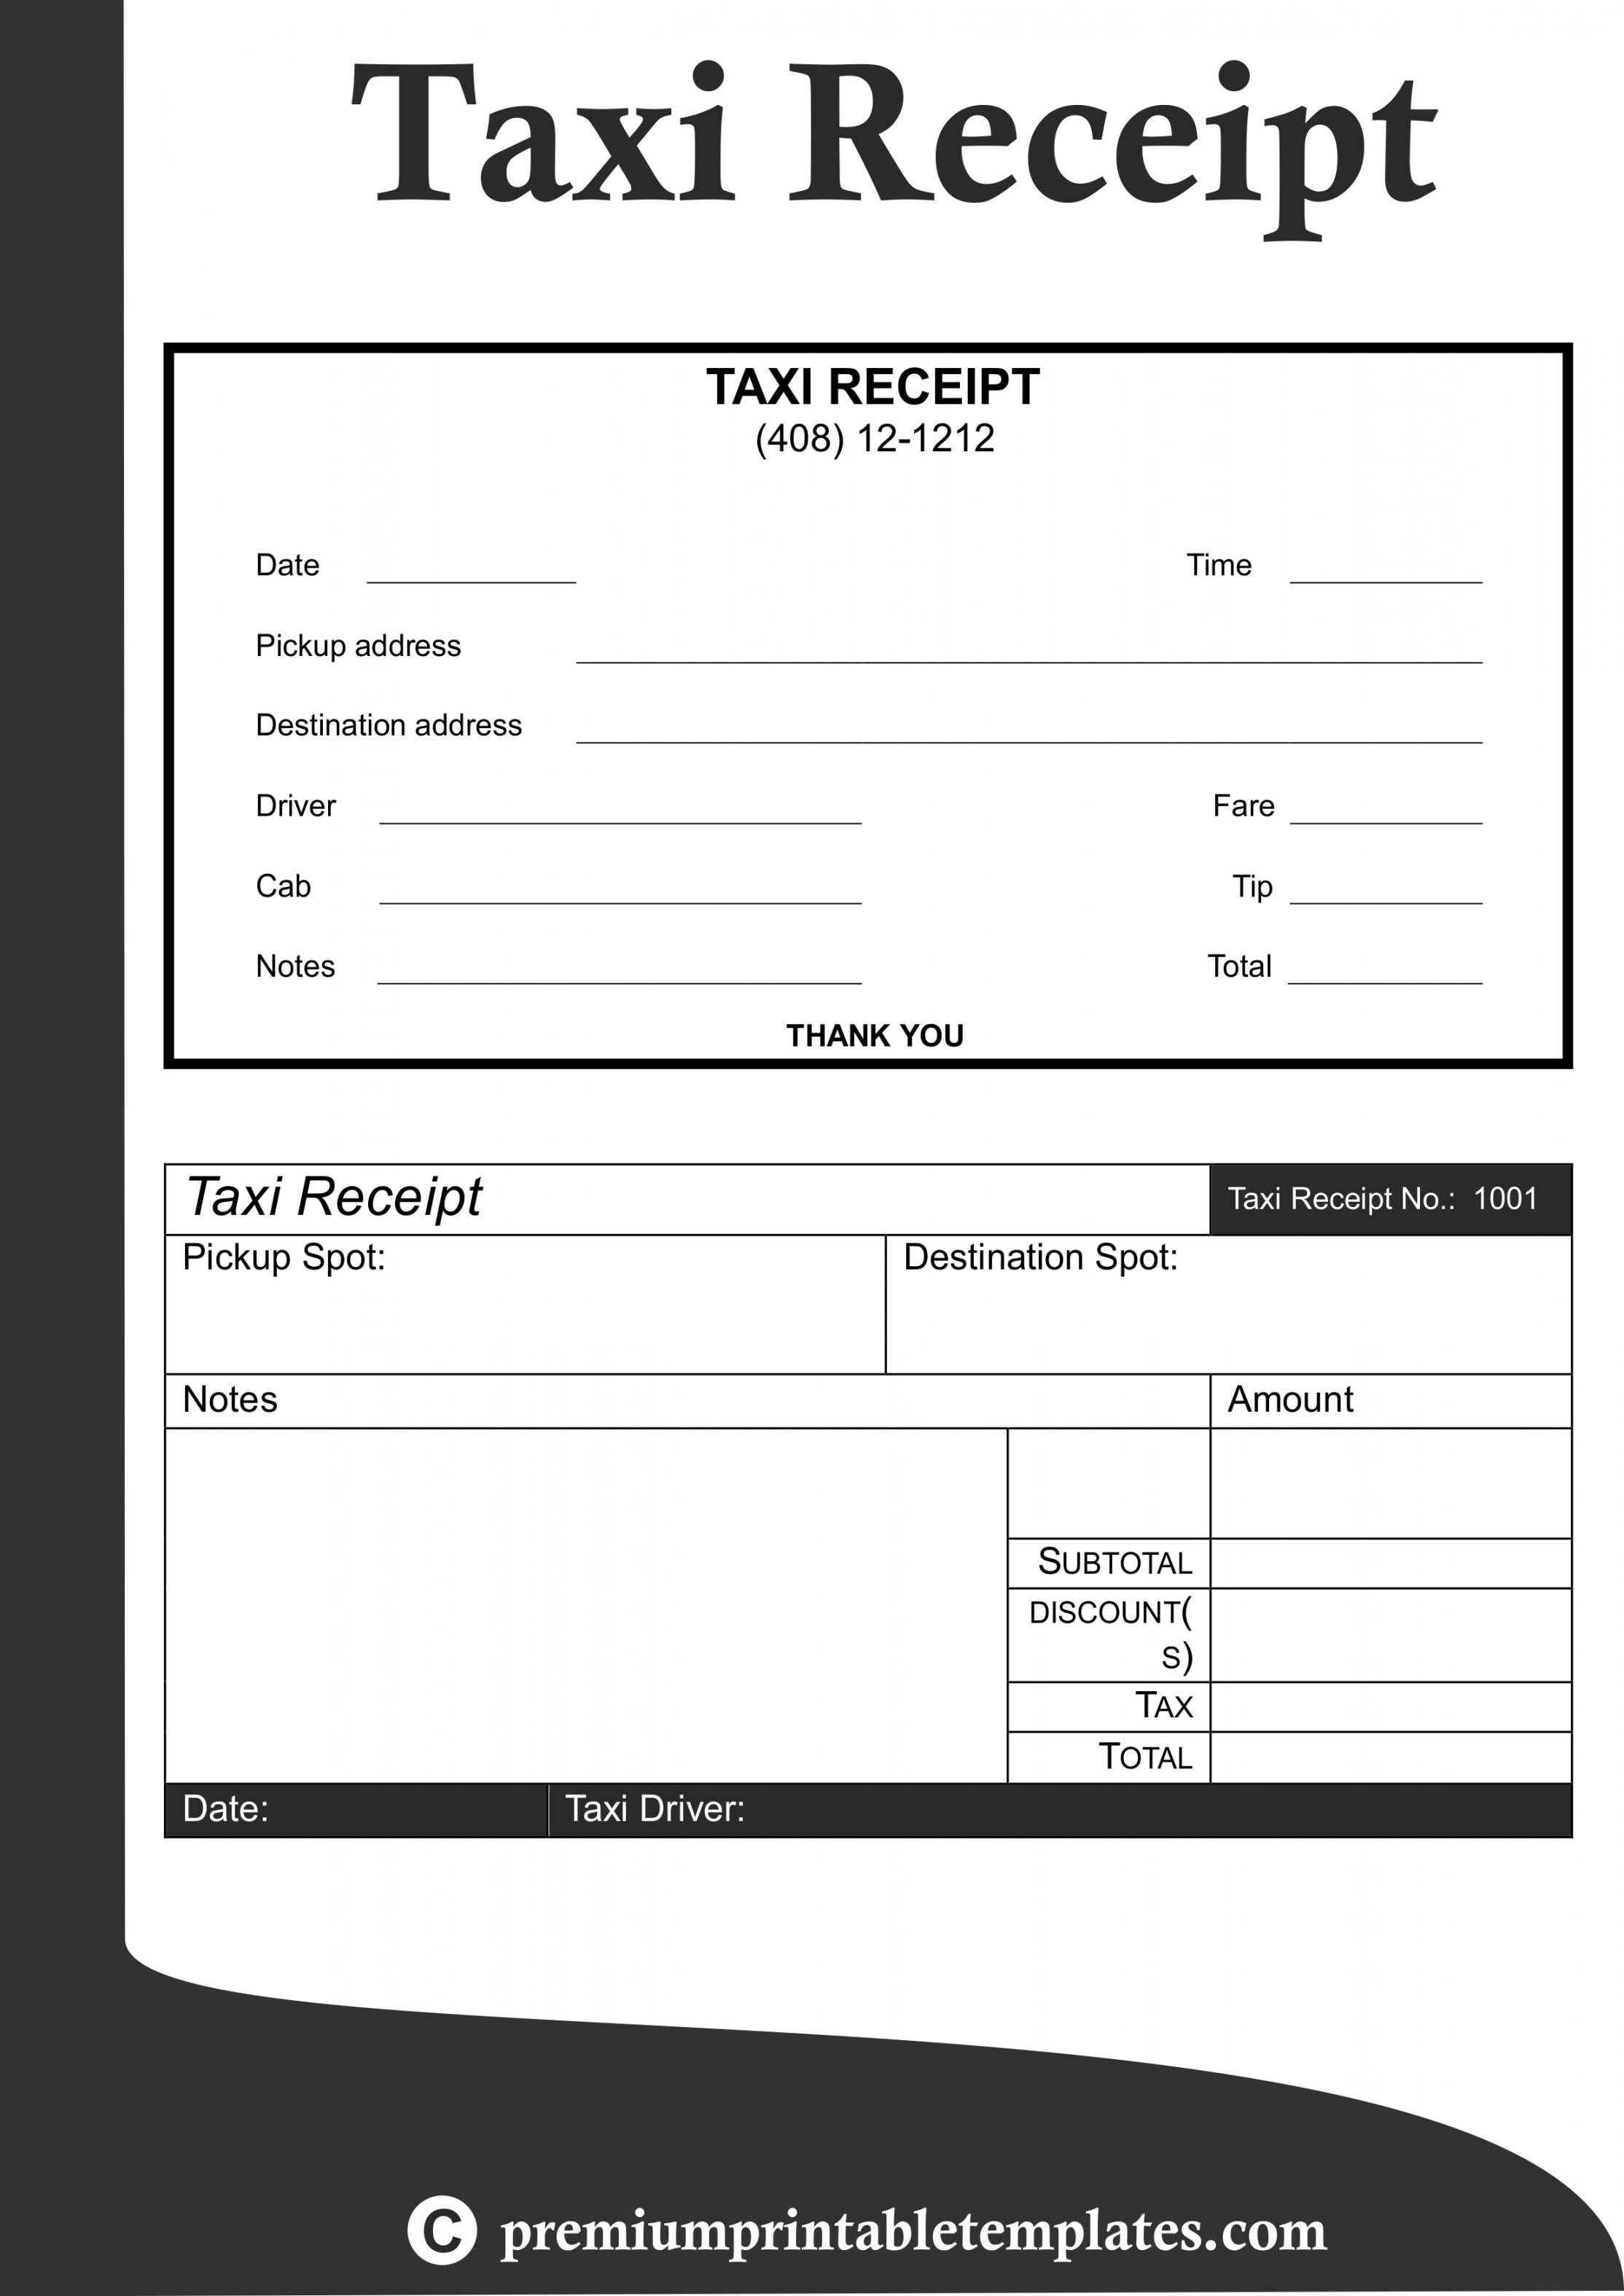 Get Our Free Taxi Receipt Template Receipt Template Invoice Template Business Plan Template